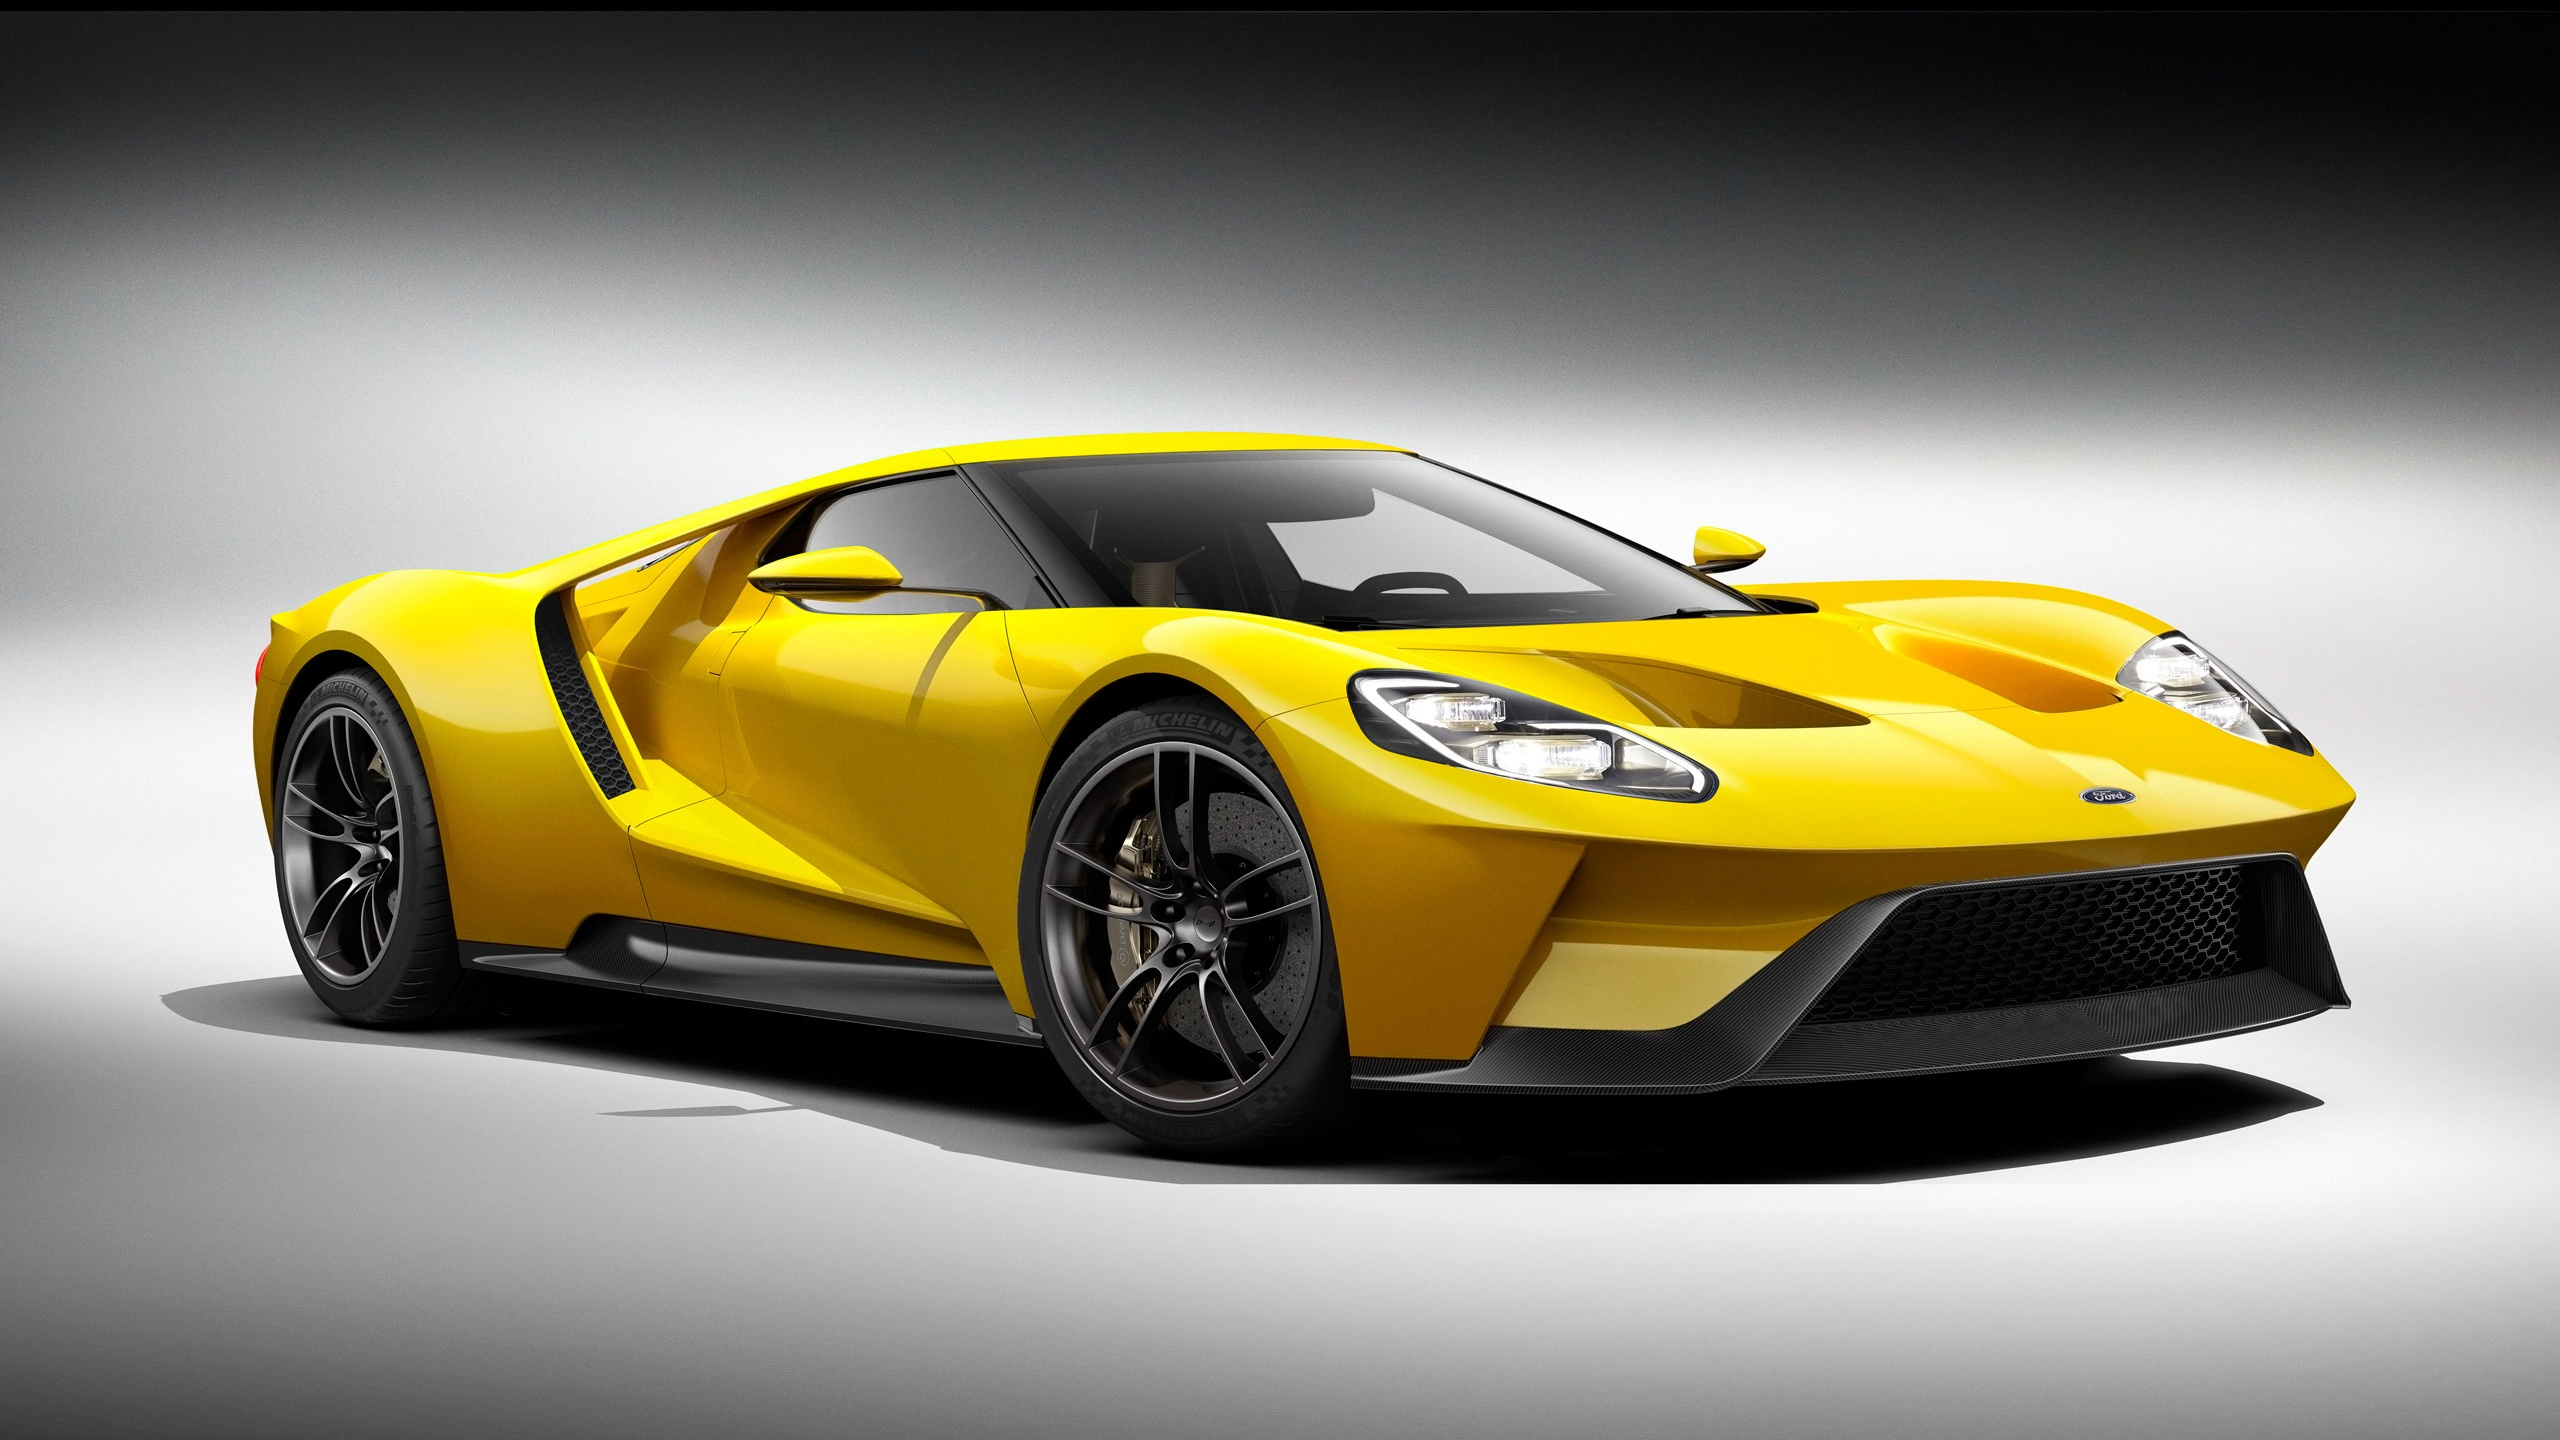 Ford GT 2016 Wallpaper HD Car Wallpapers 2560x1440